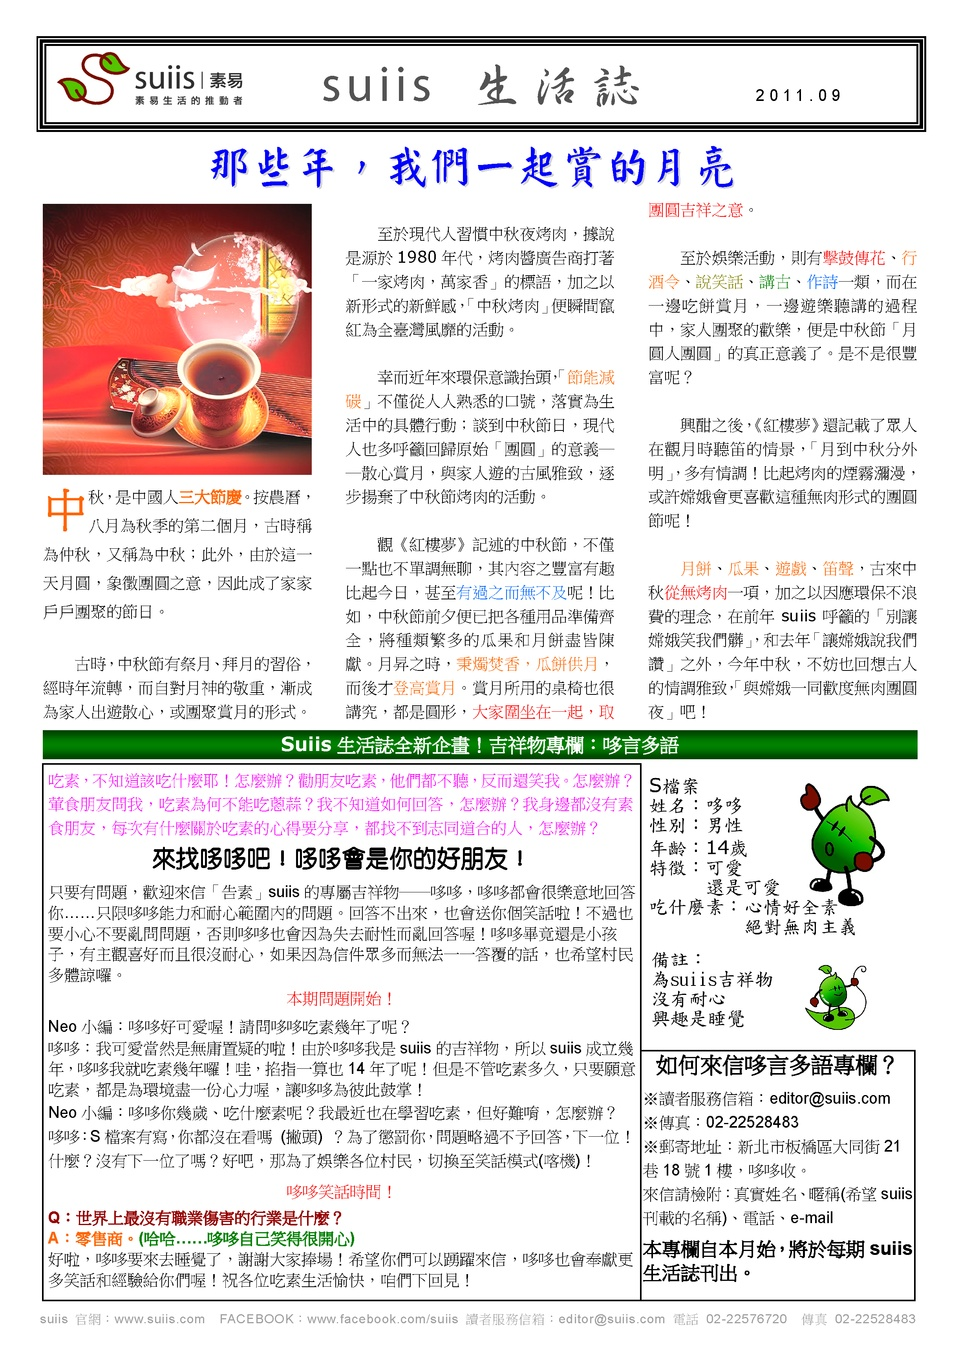 suiis 生活誌-2011-09_Page_1